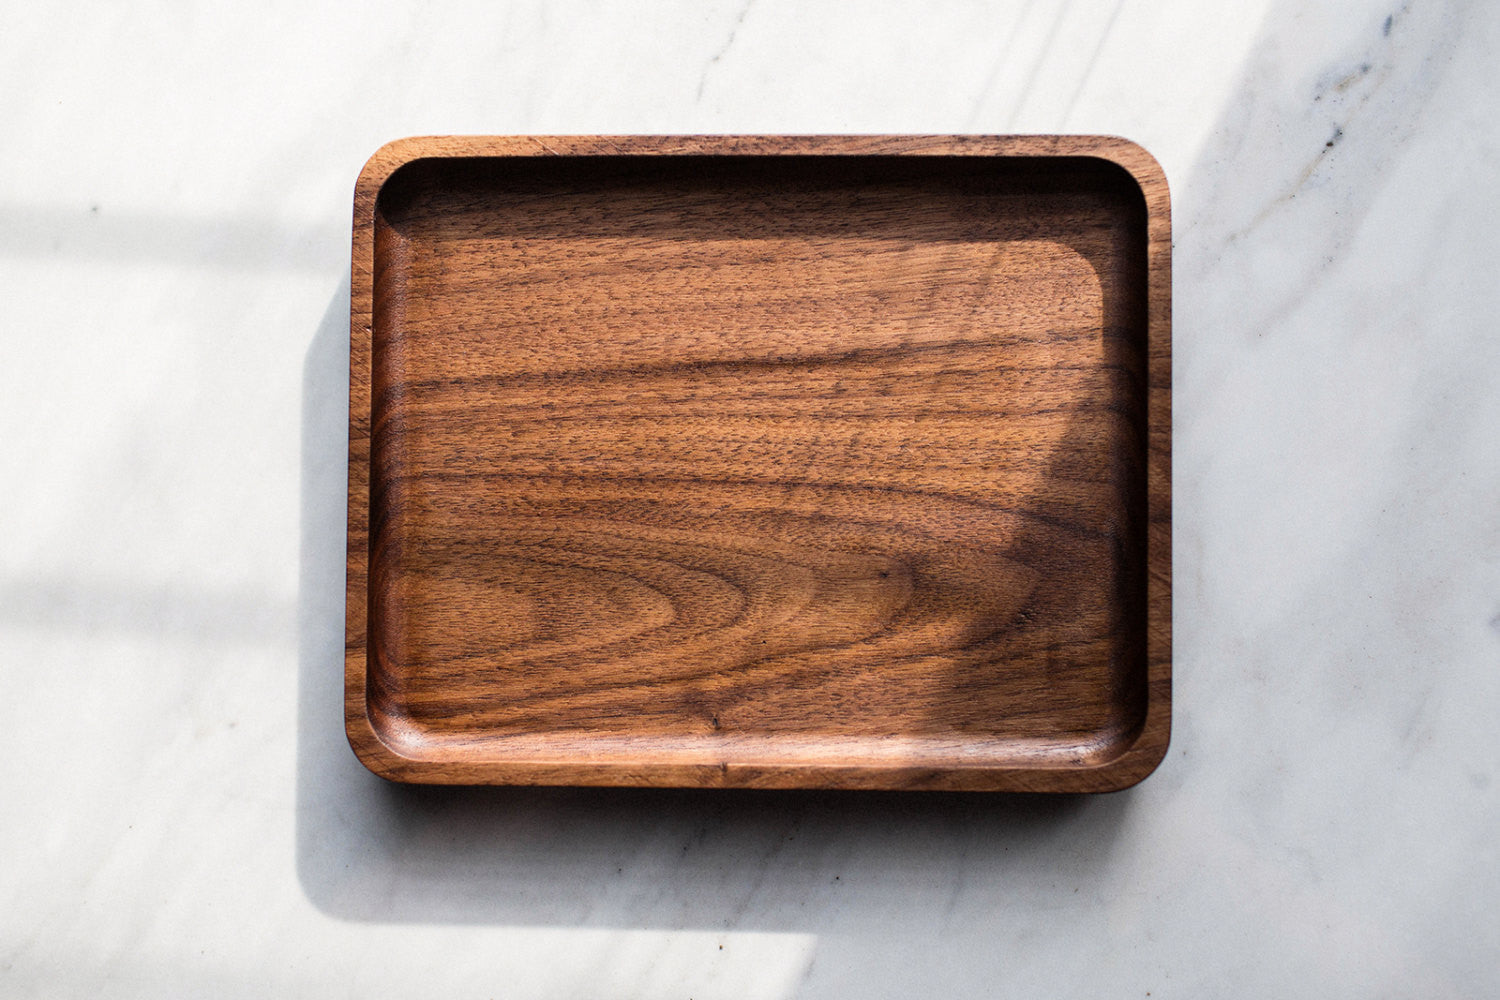 Catchall Tray / Valet Tray, Multi-Purpose, Unisex Valet Tray, Cafe Tray, Food Safe, Handcrafted, Handmade, Made in Canada